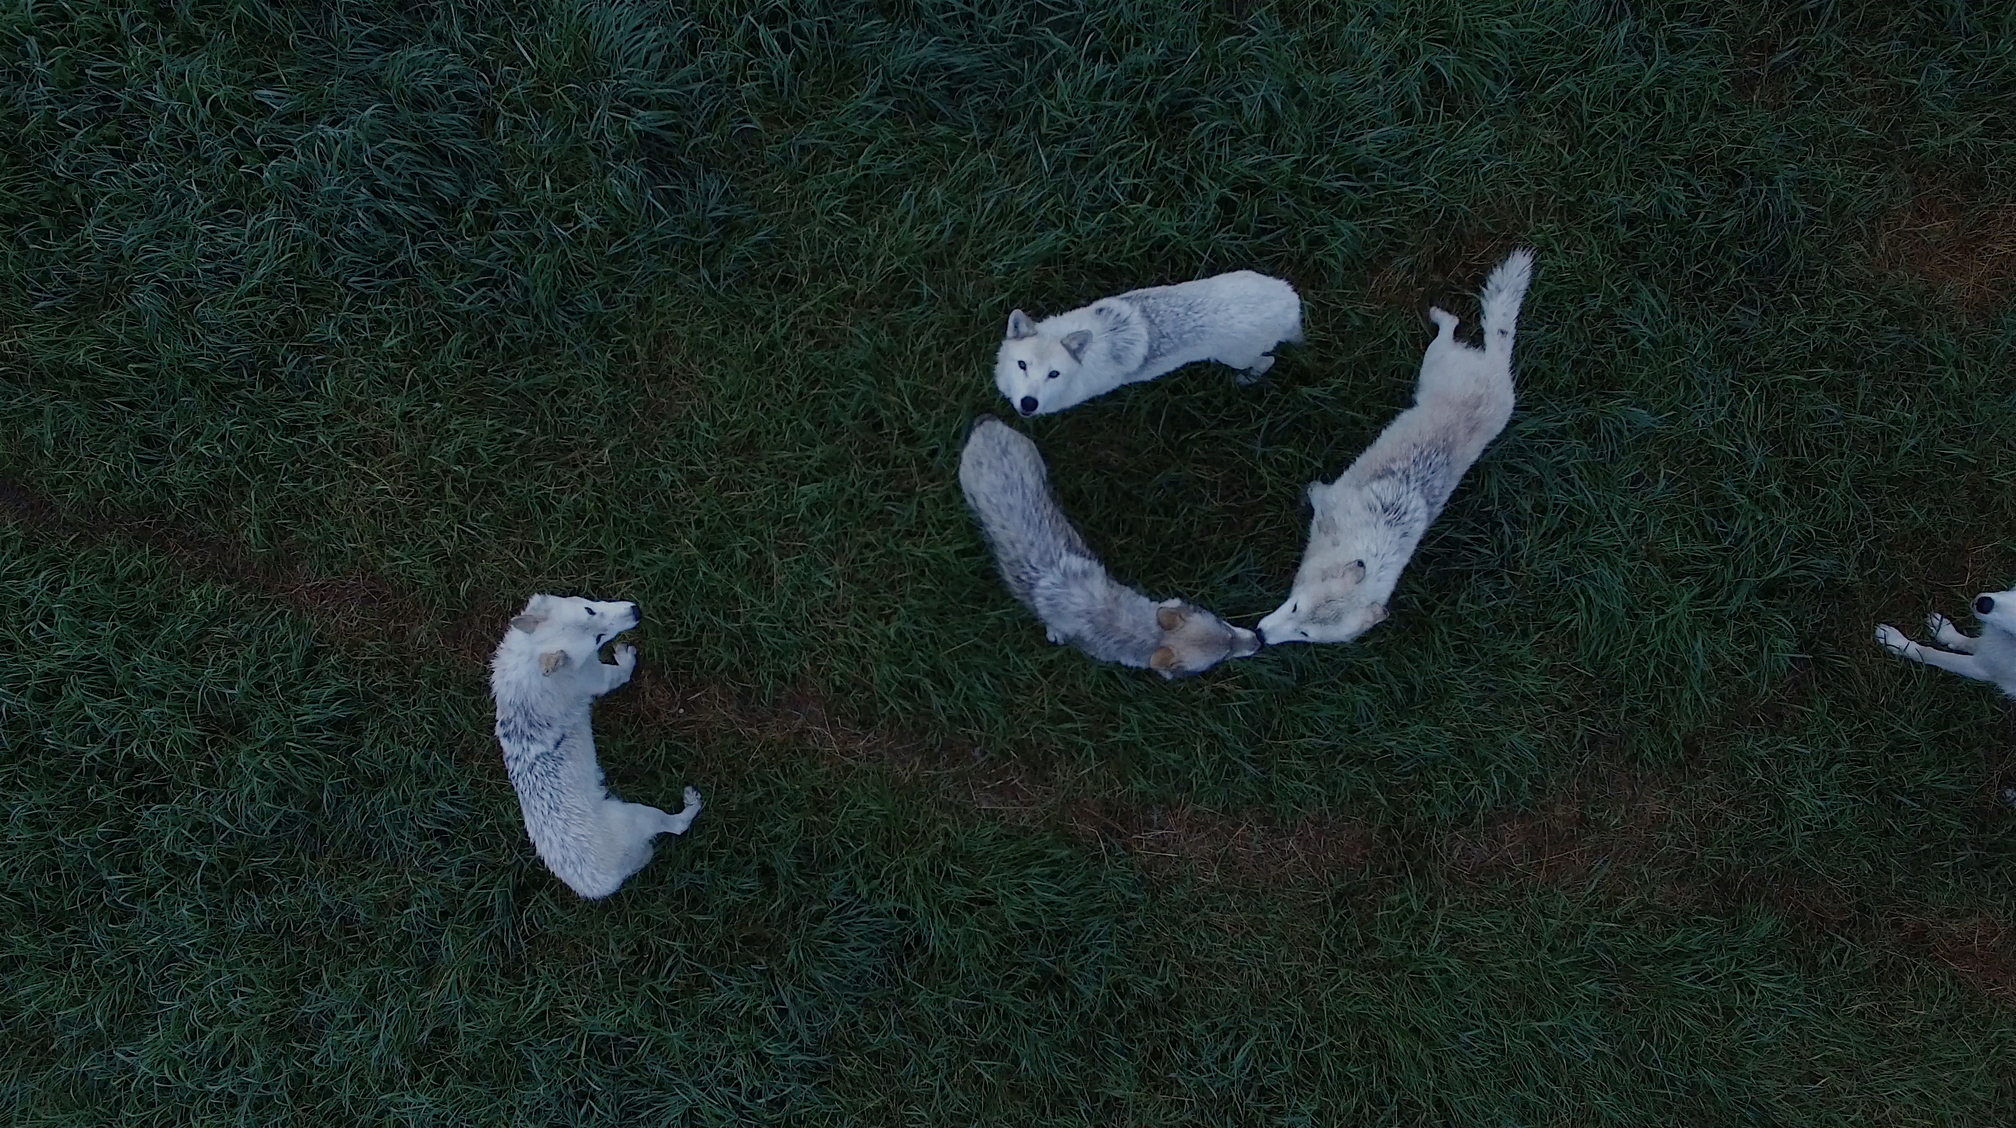 Demelza Kooij, Wolves from Above (2018). Courtesy of the artist